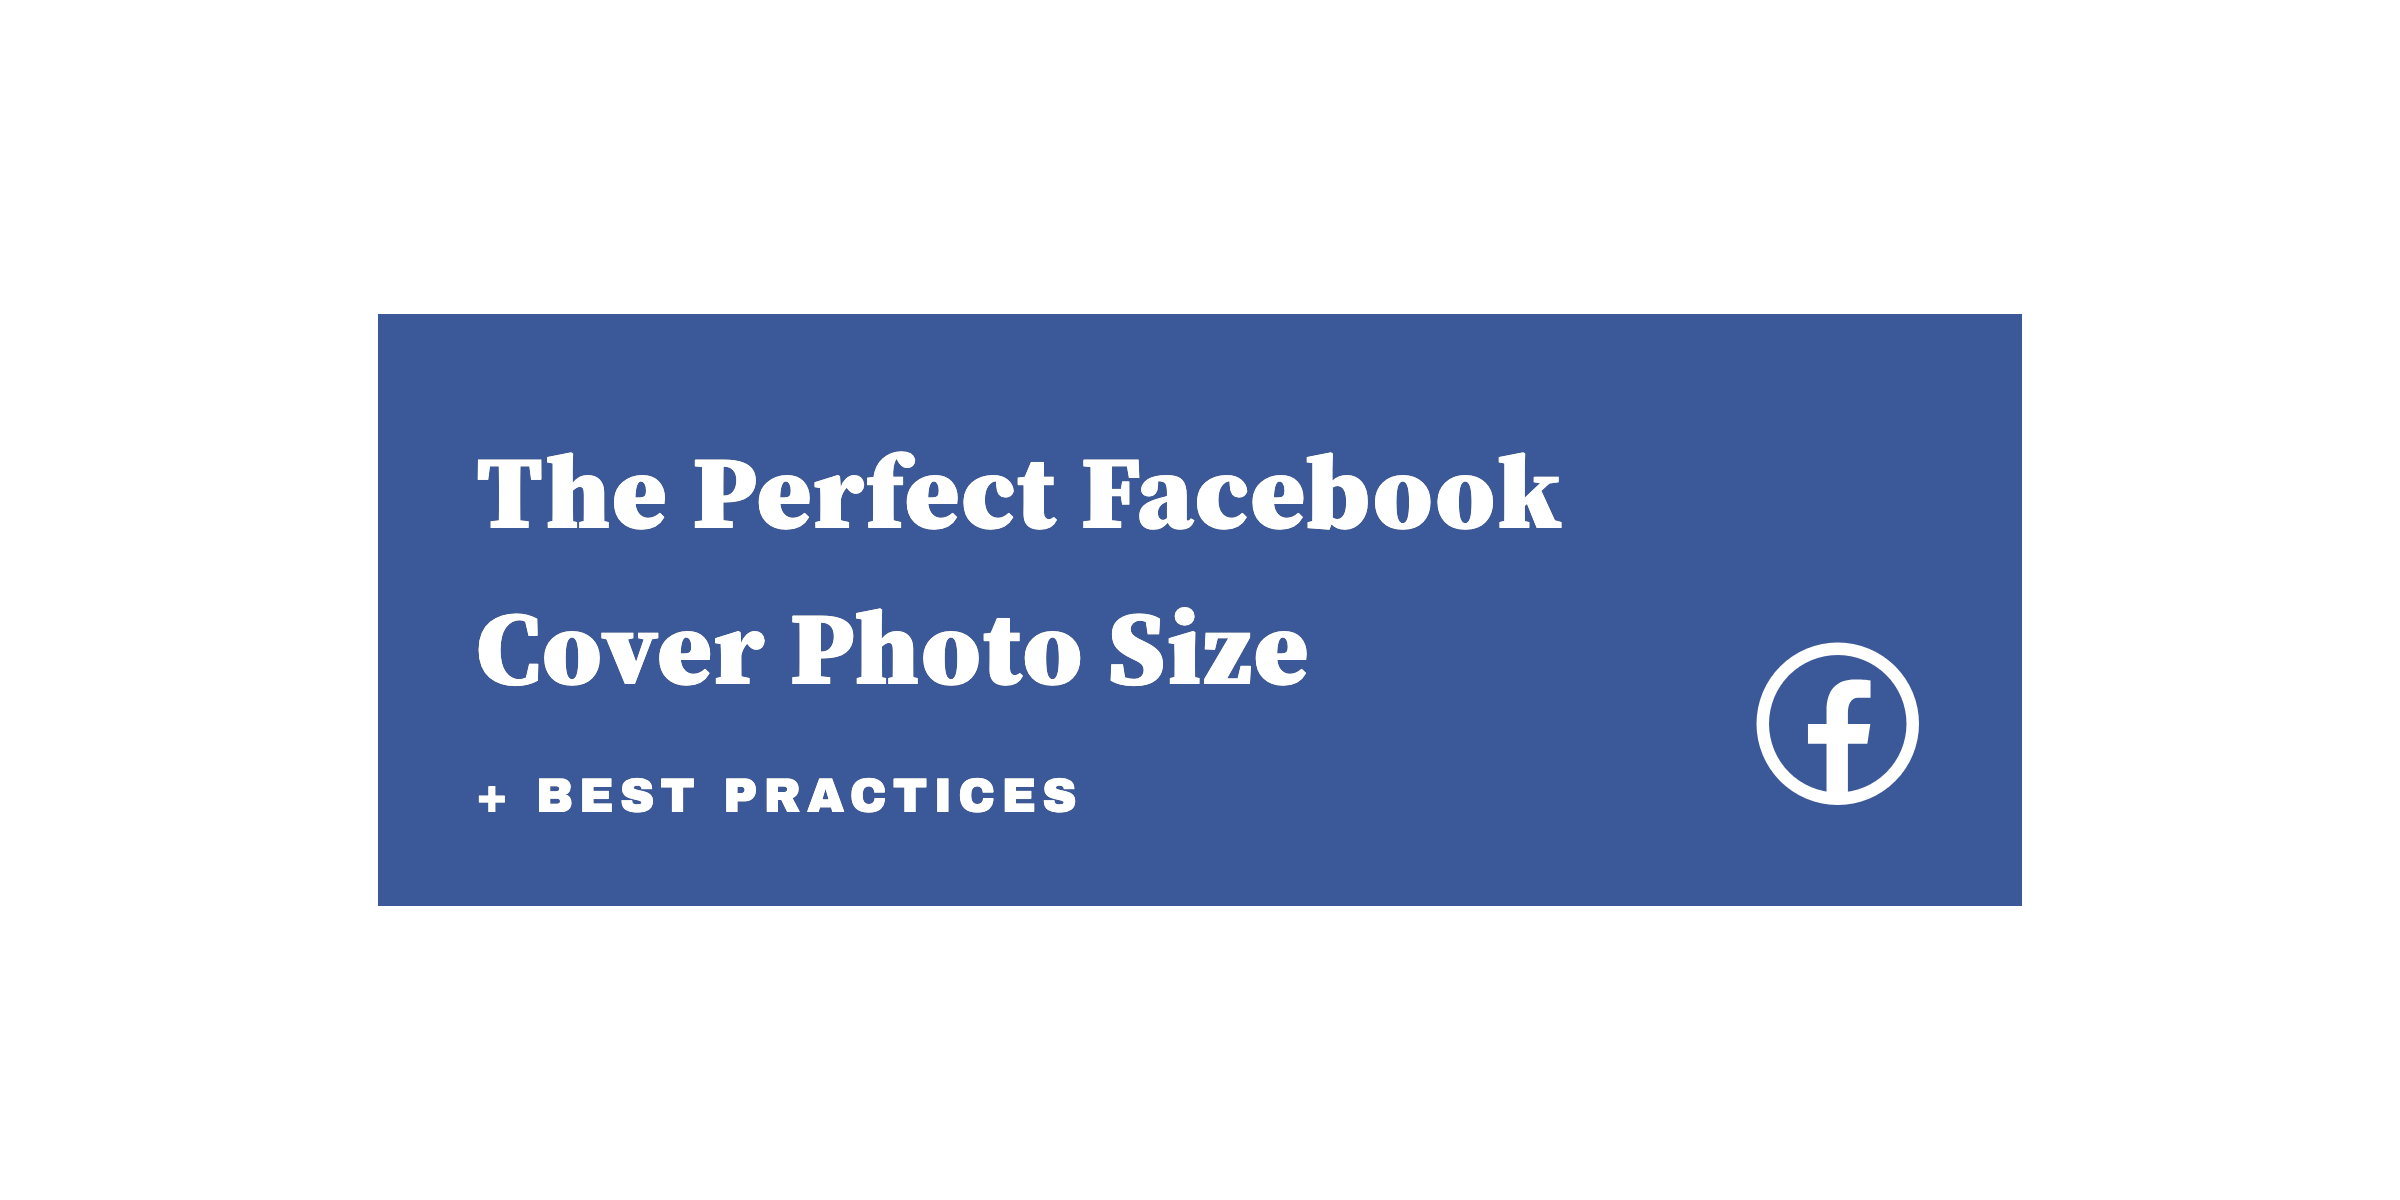 Fa Ceb Oo K The Perfect Facebook Cover Photo Size Best Practices 2019 Update